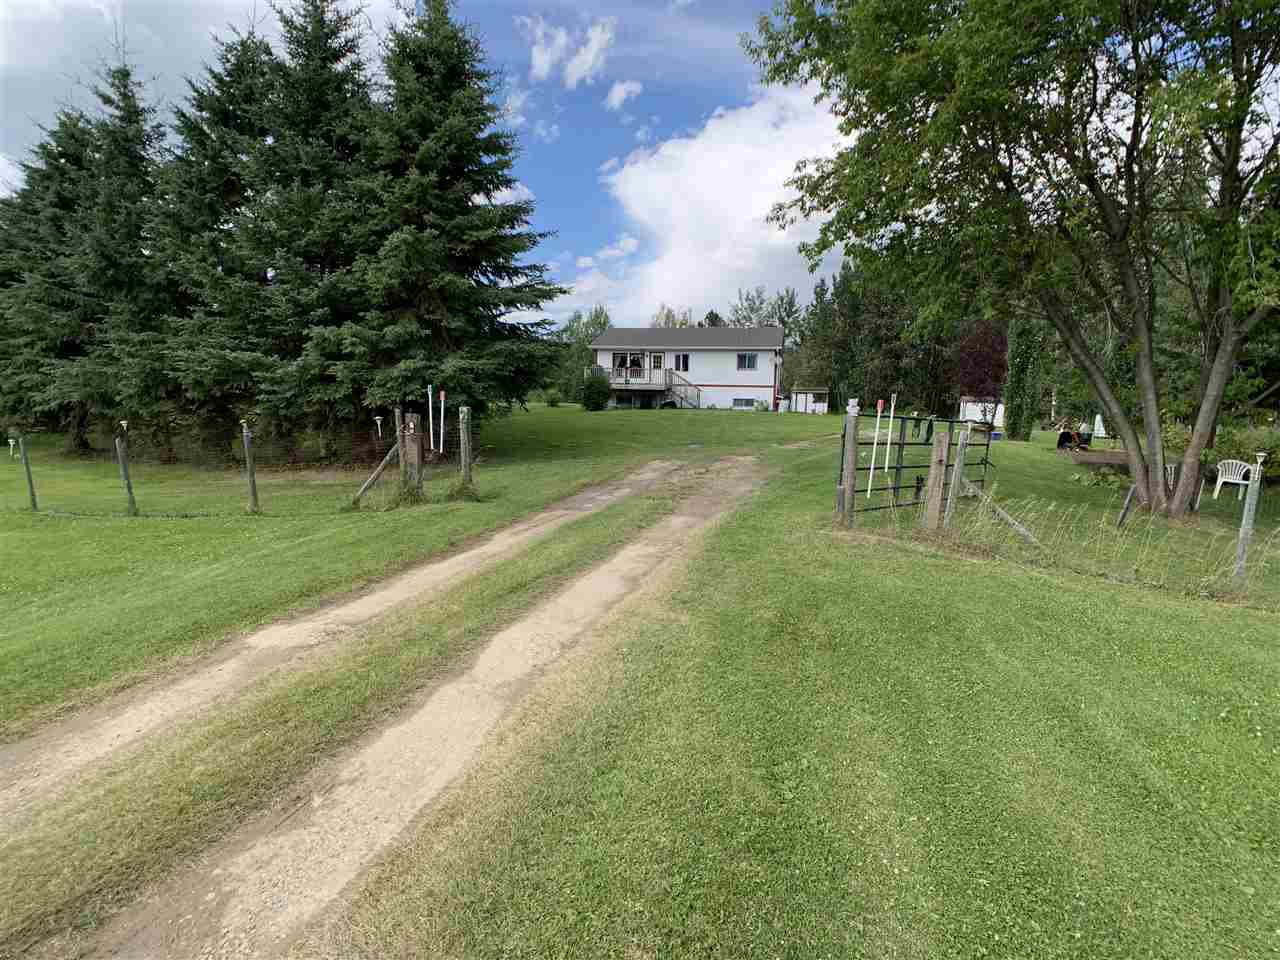 Main Photo: 2 53412 RGE RD 41: Rural Parkland County House for sale : MLS®# E4209947